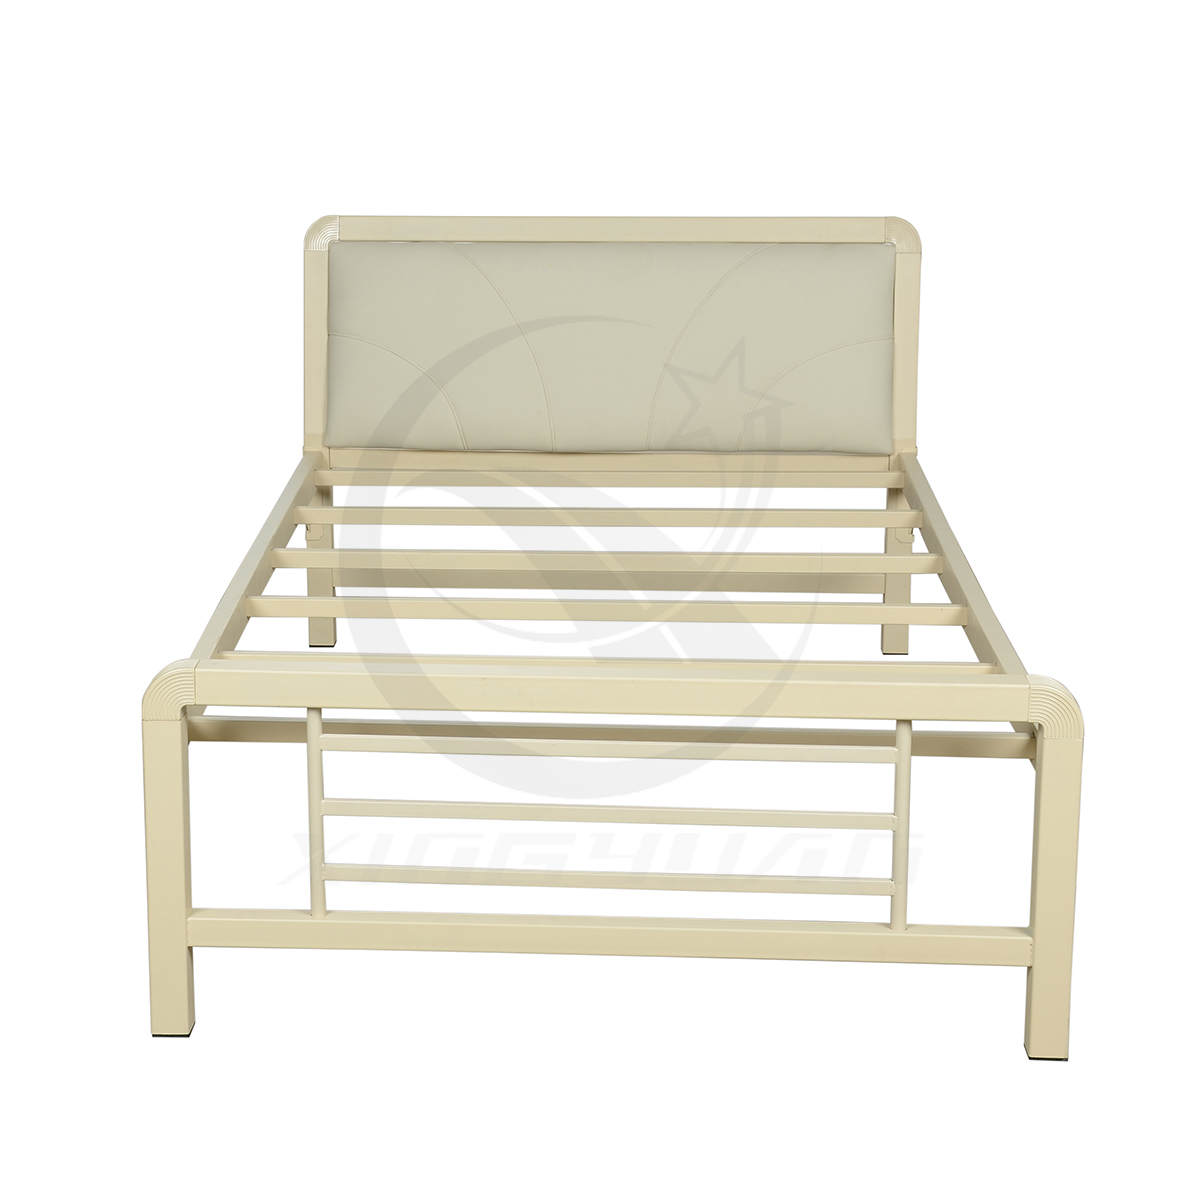 Iron Furniture Space Saving Detachable Single Sleeper Bed for Kids